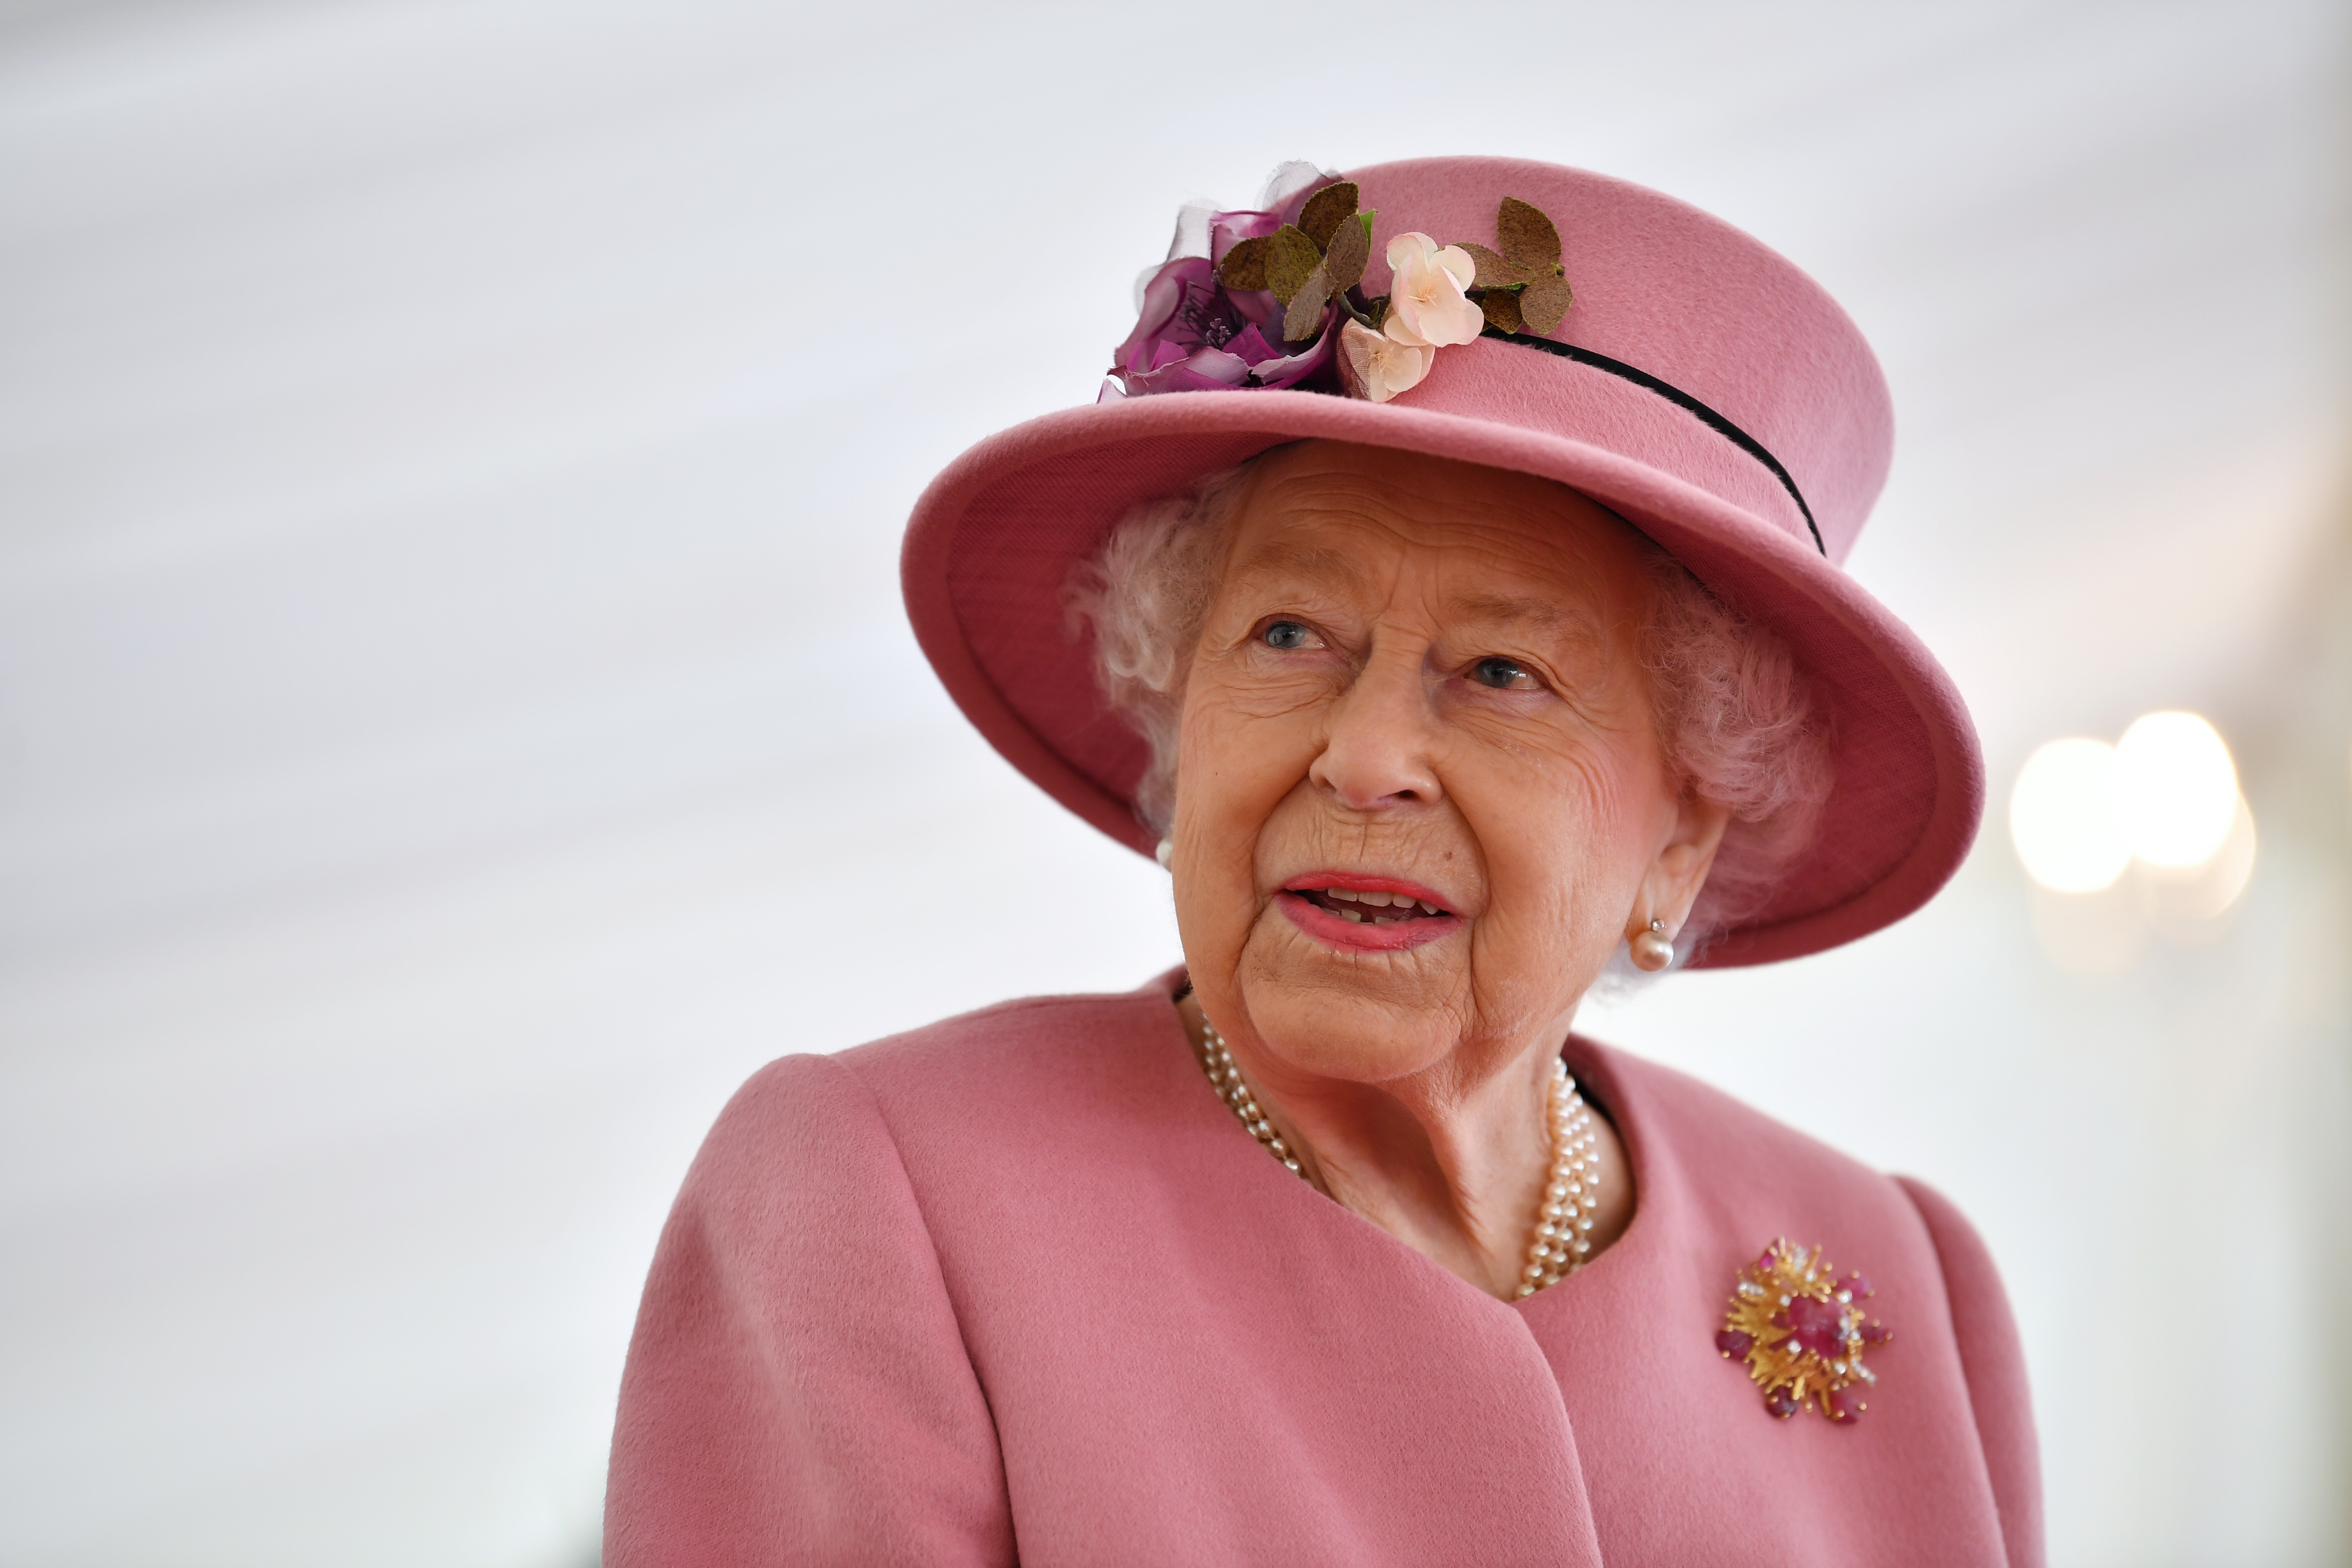 The Queen comments on 'horrible' coronavirus as she makes first public outing in months